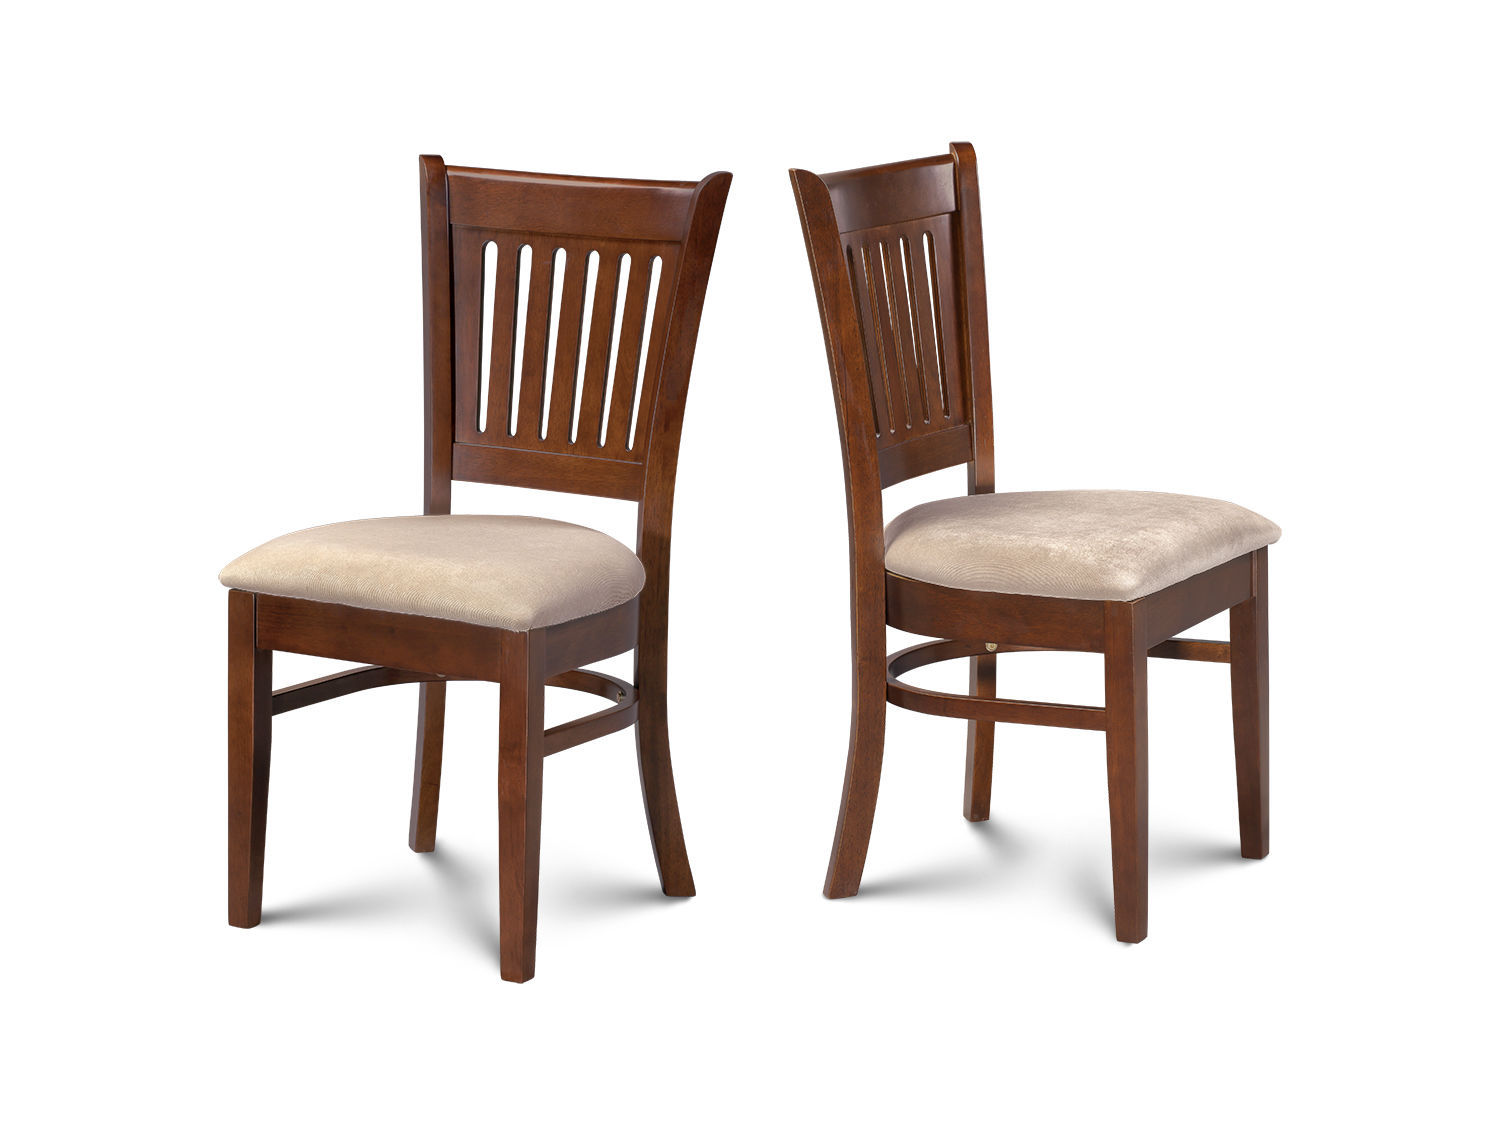 SET OF 2 DINETTE KITCHEN DINING CHAIRS WITH WOODEN SEATS IN ESPRESSO